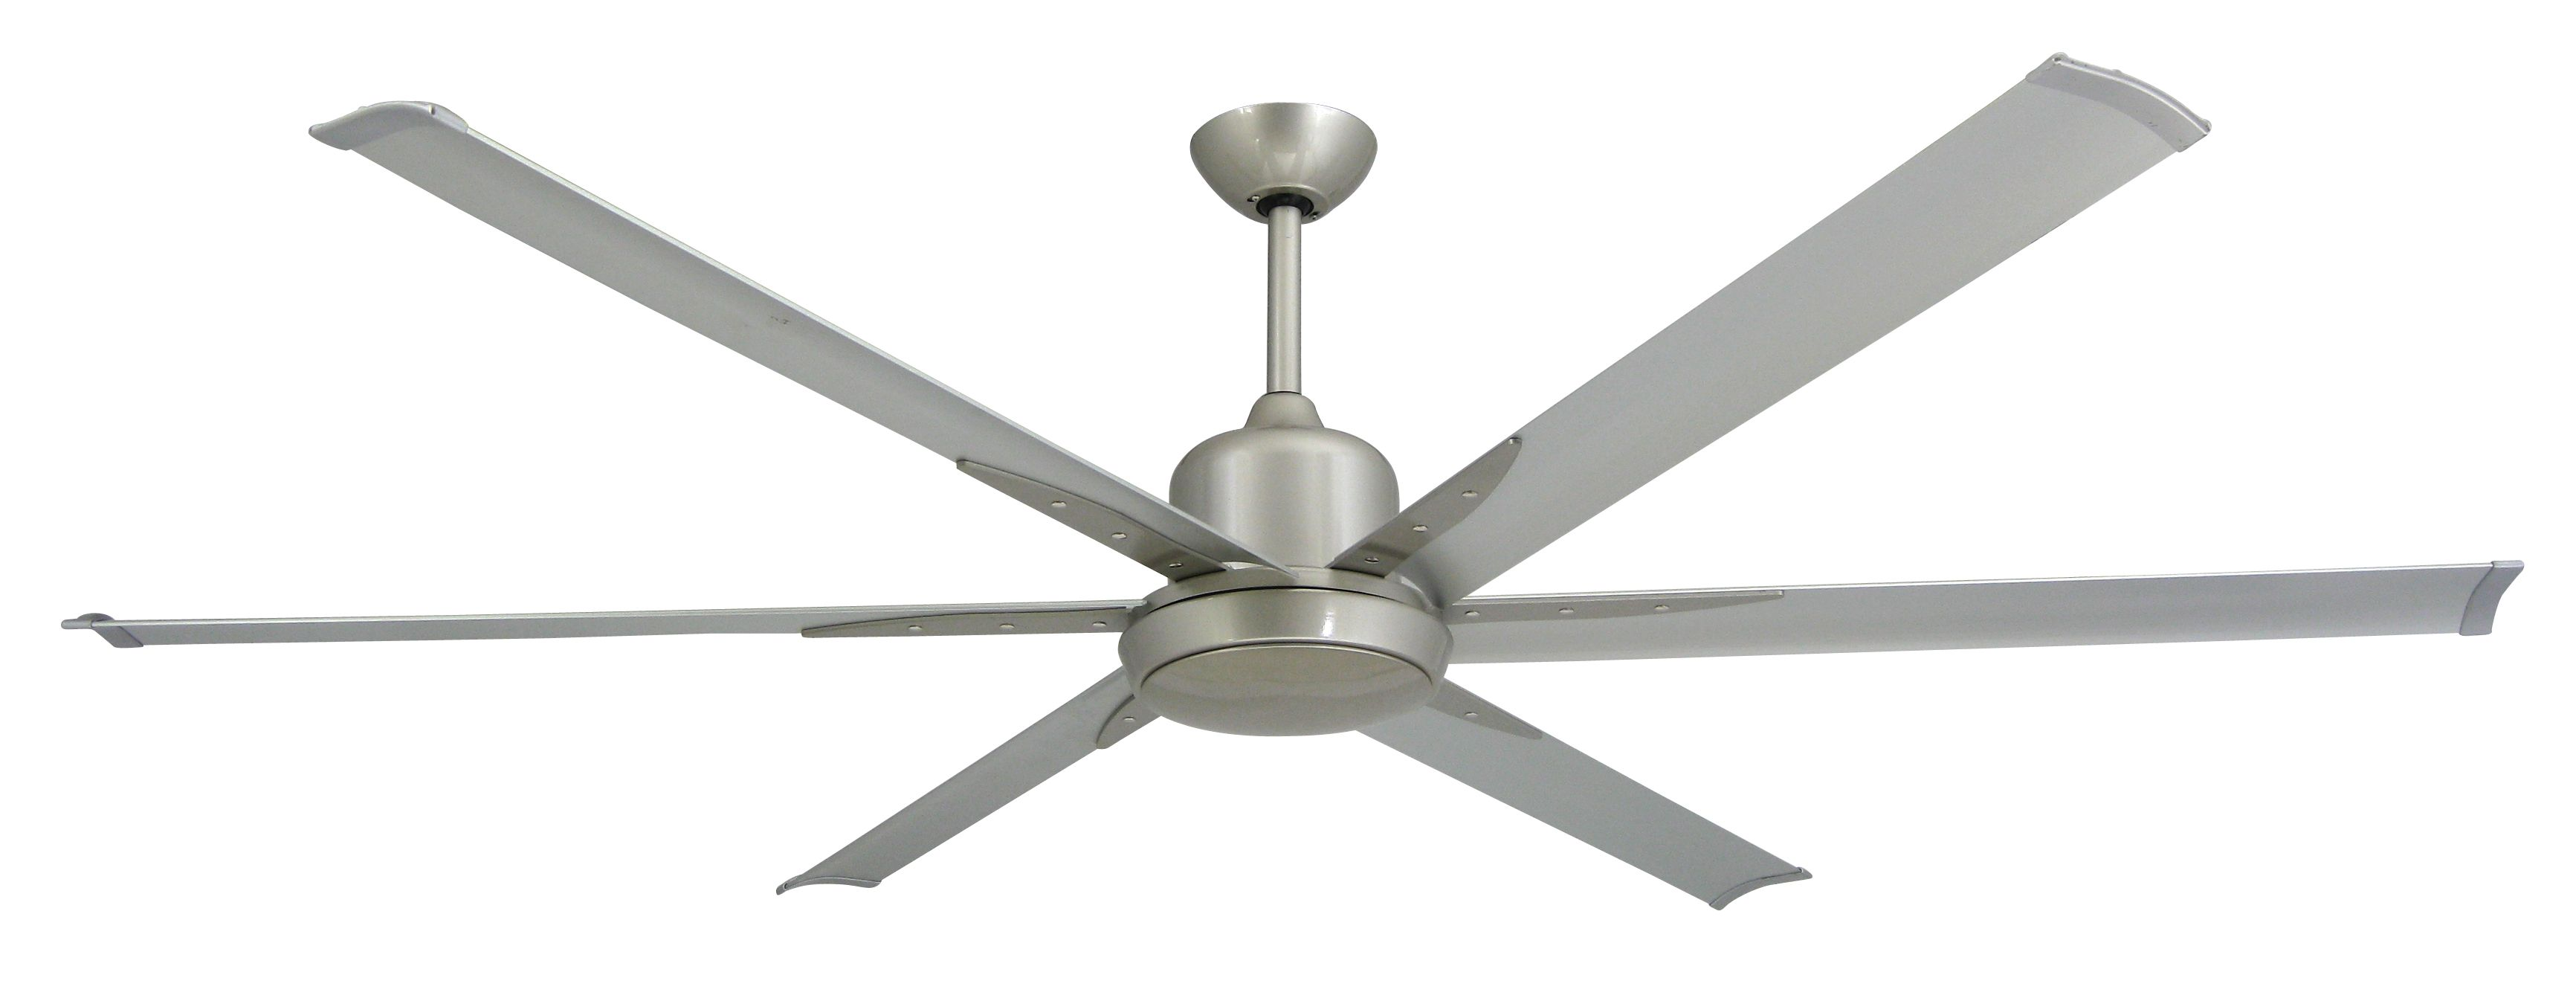 Troposair titan brushed nickel large industrial ceiling fan with troposair titan 72 in indooroutdoor brushed nickel ceiling fan and light at the home depot mobile mozeypictures Choice Image